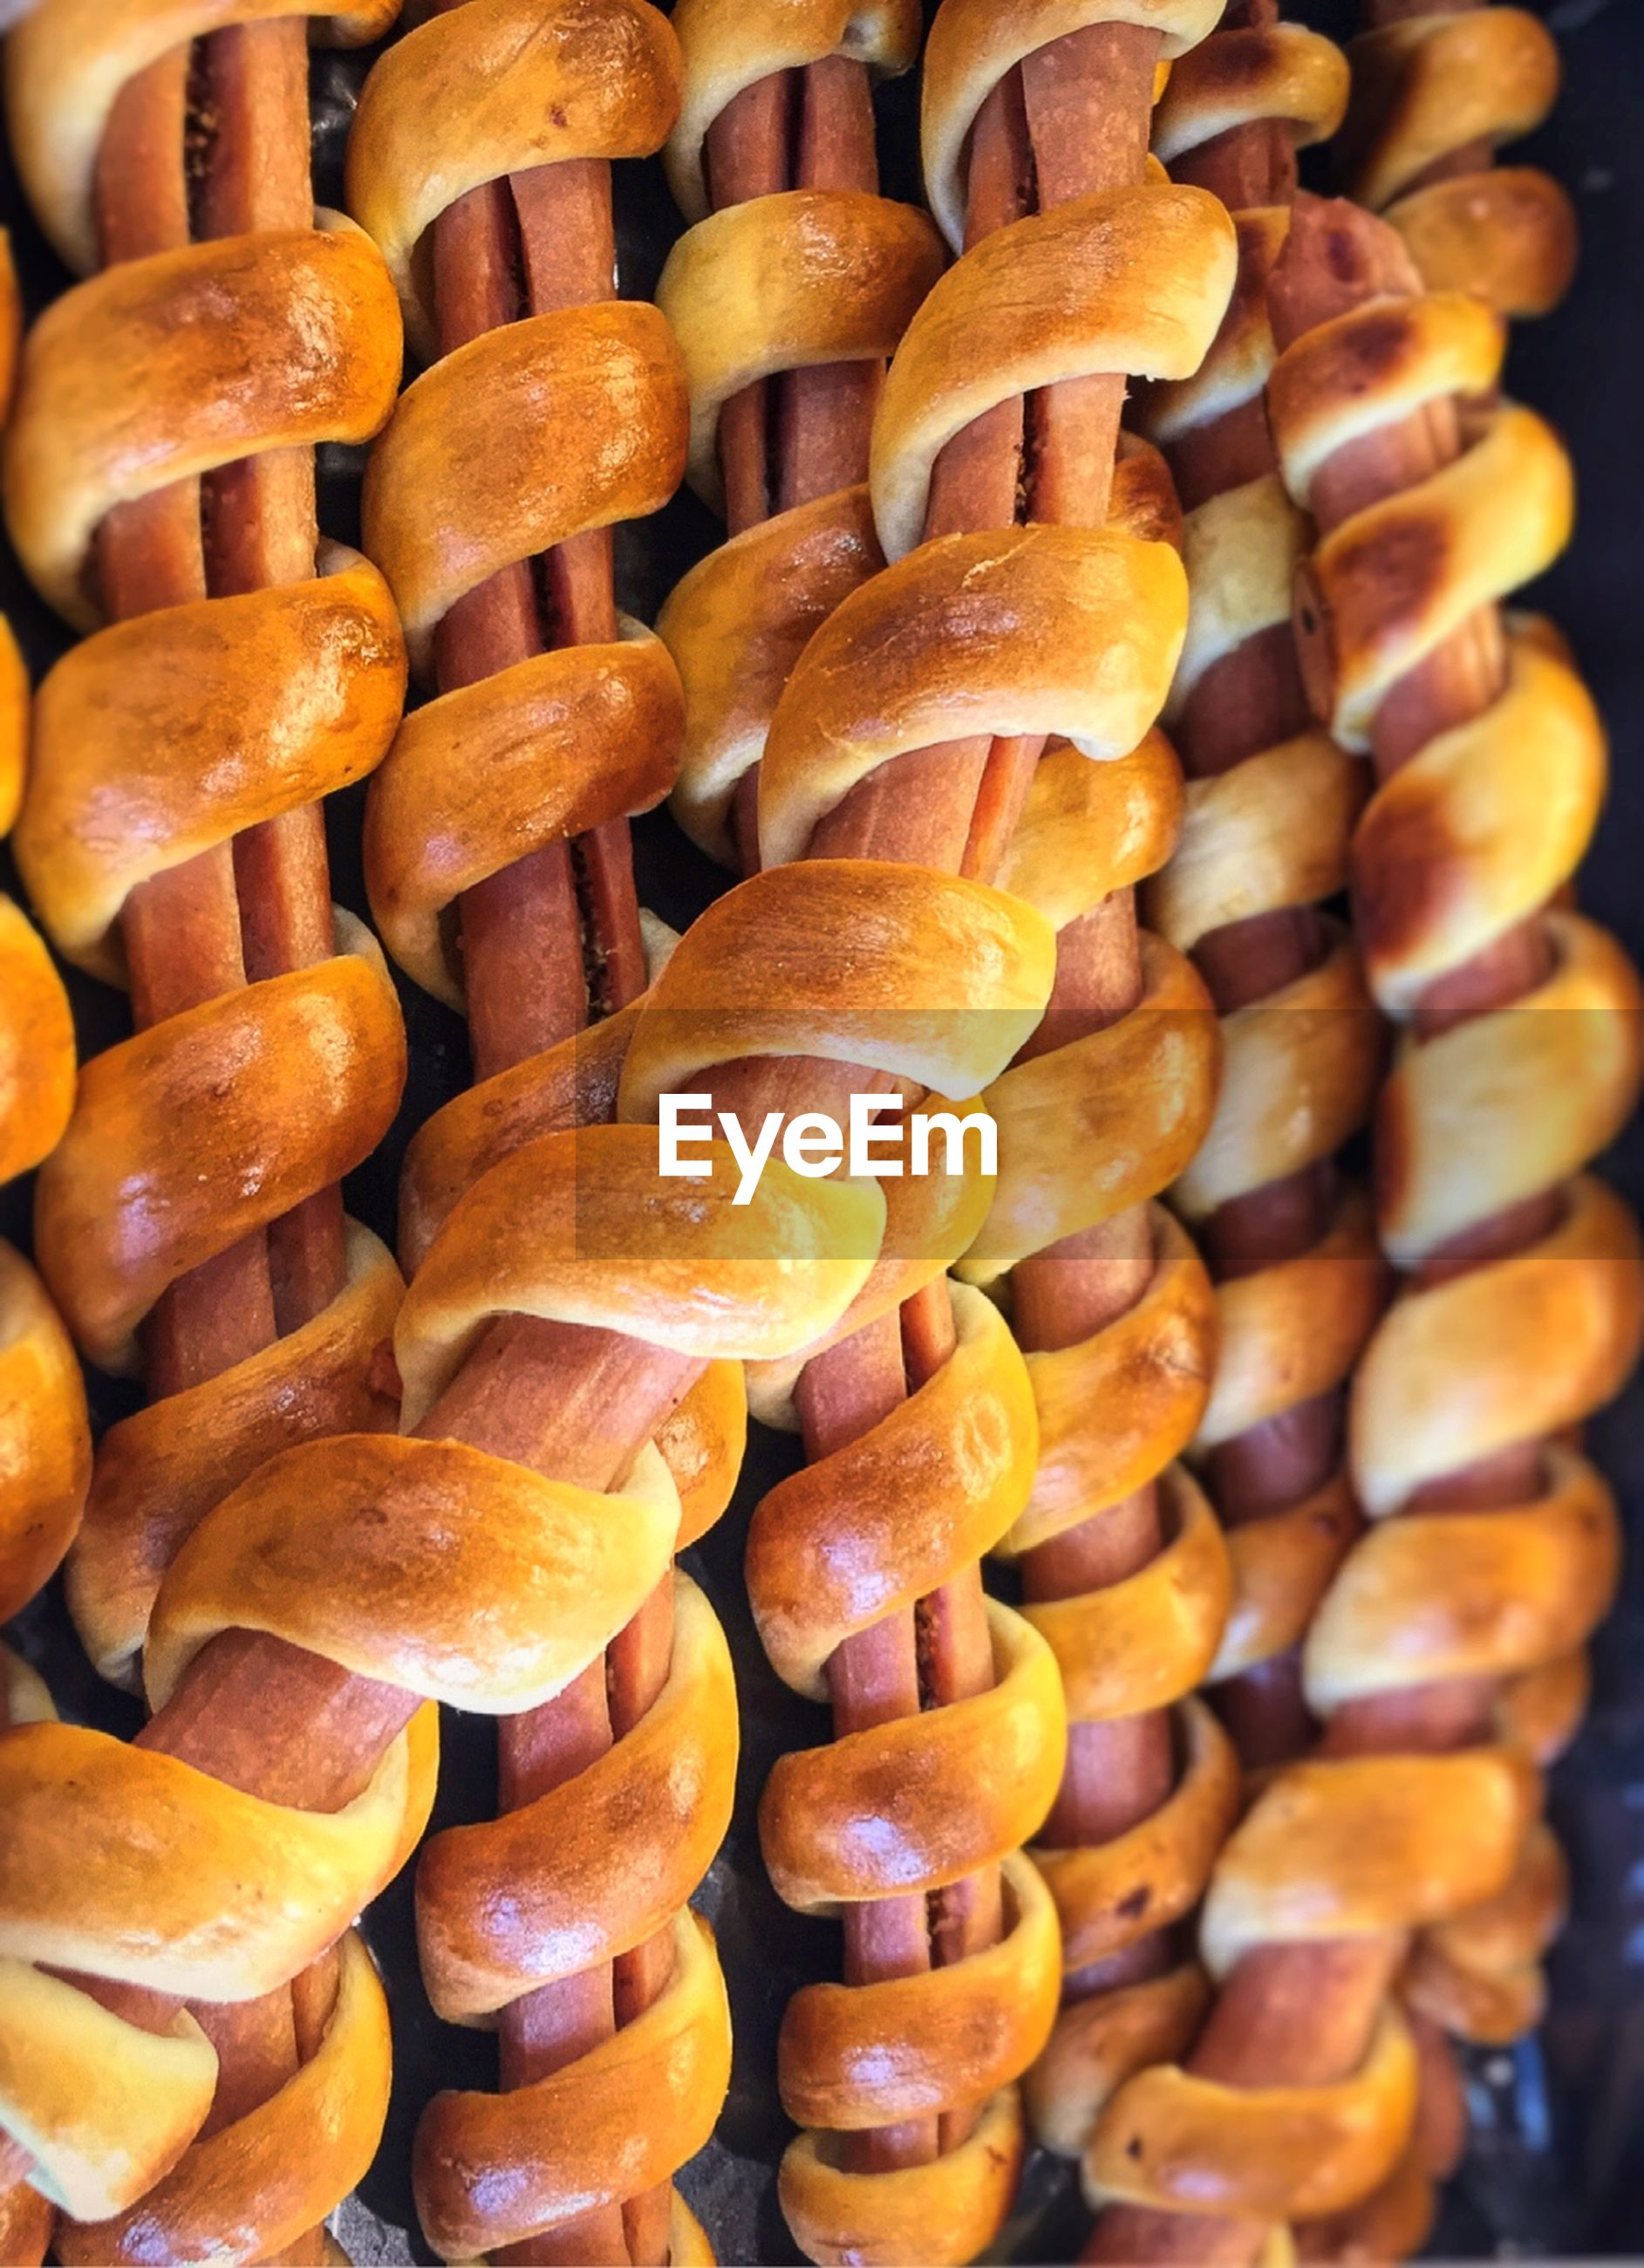 Close-up of bread with sausages